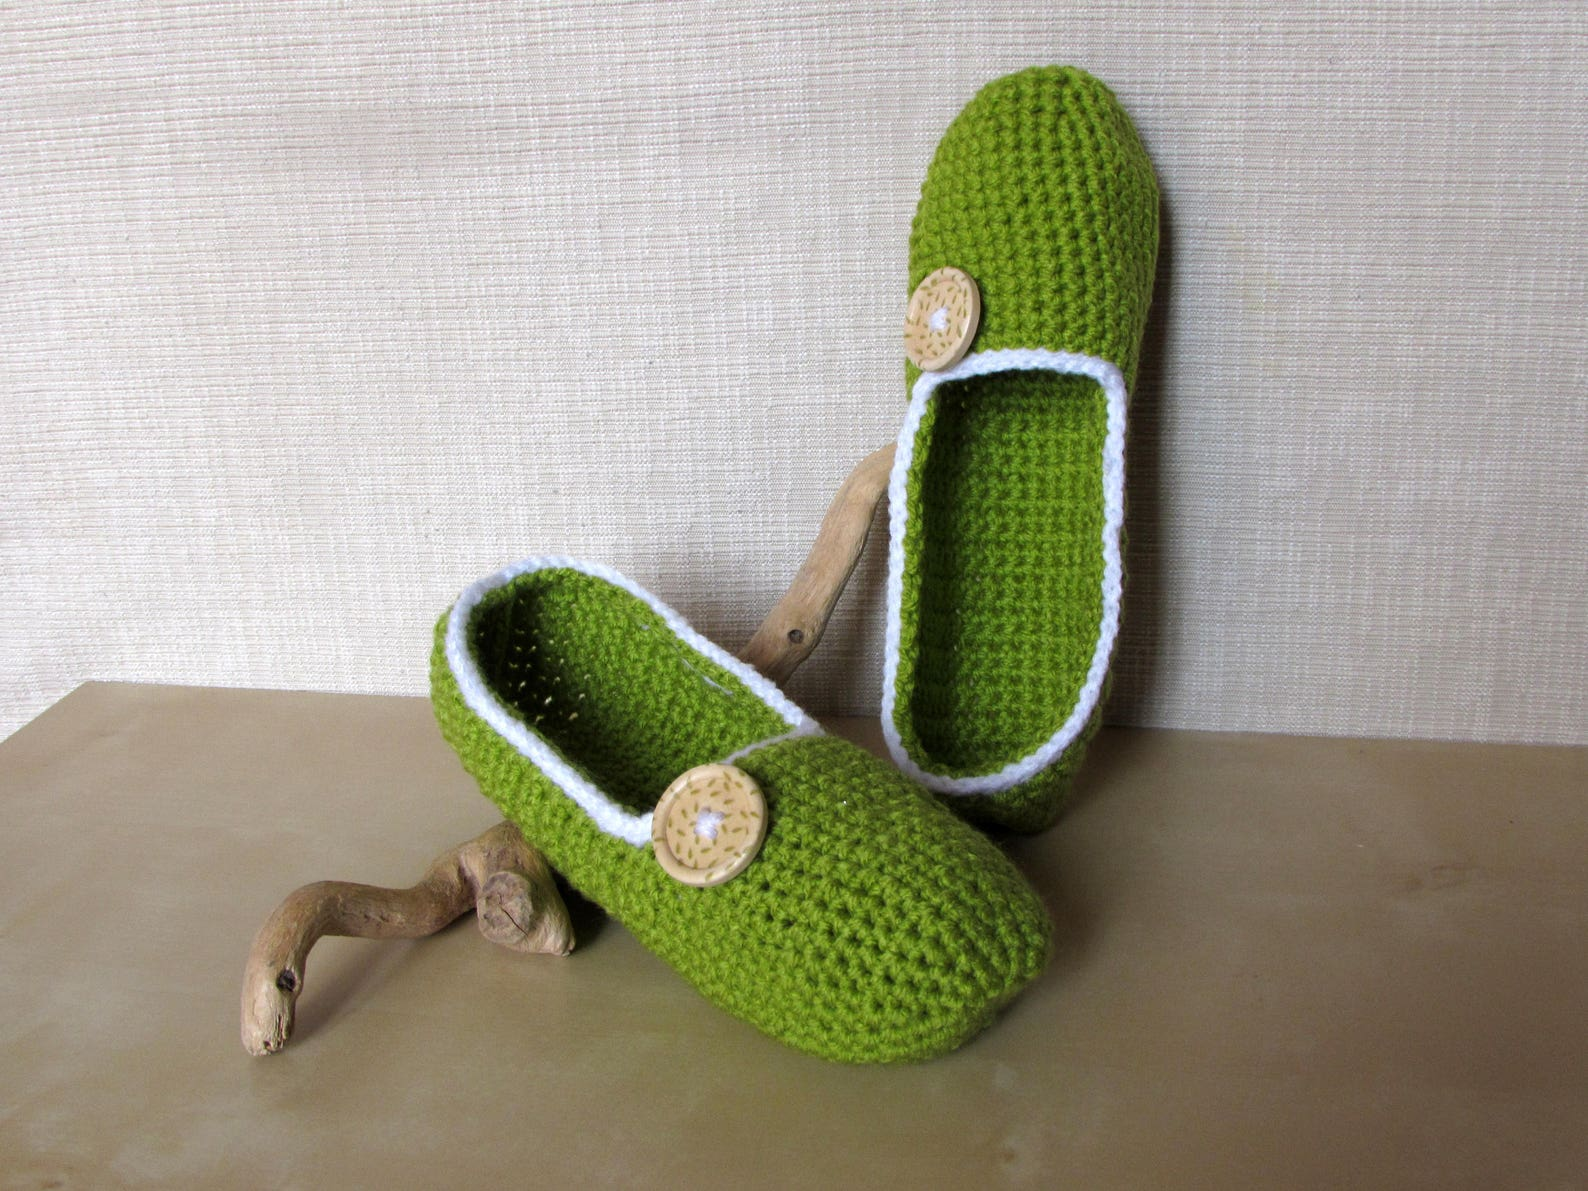 ballet flats, women's slippers, nightwear and crochet yoga in green and white acrylic with resin decoration in wood and gree